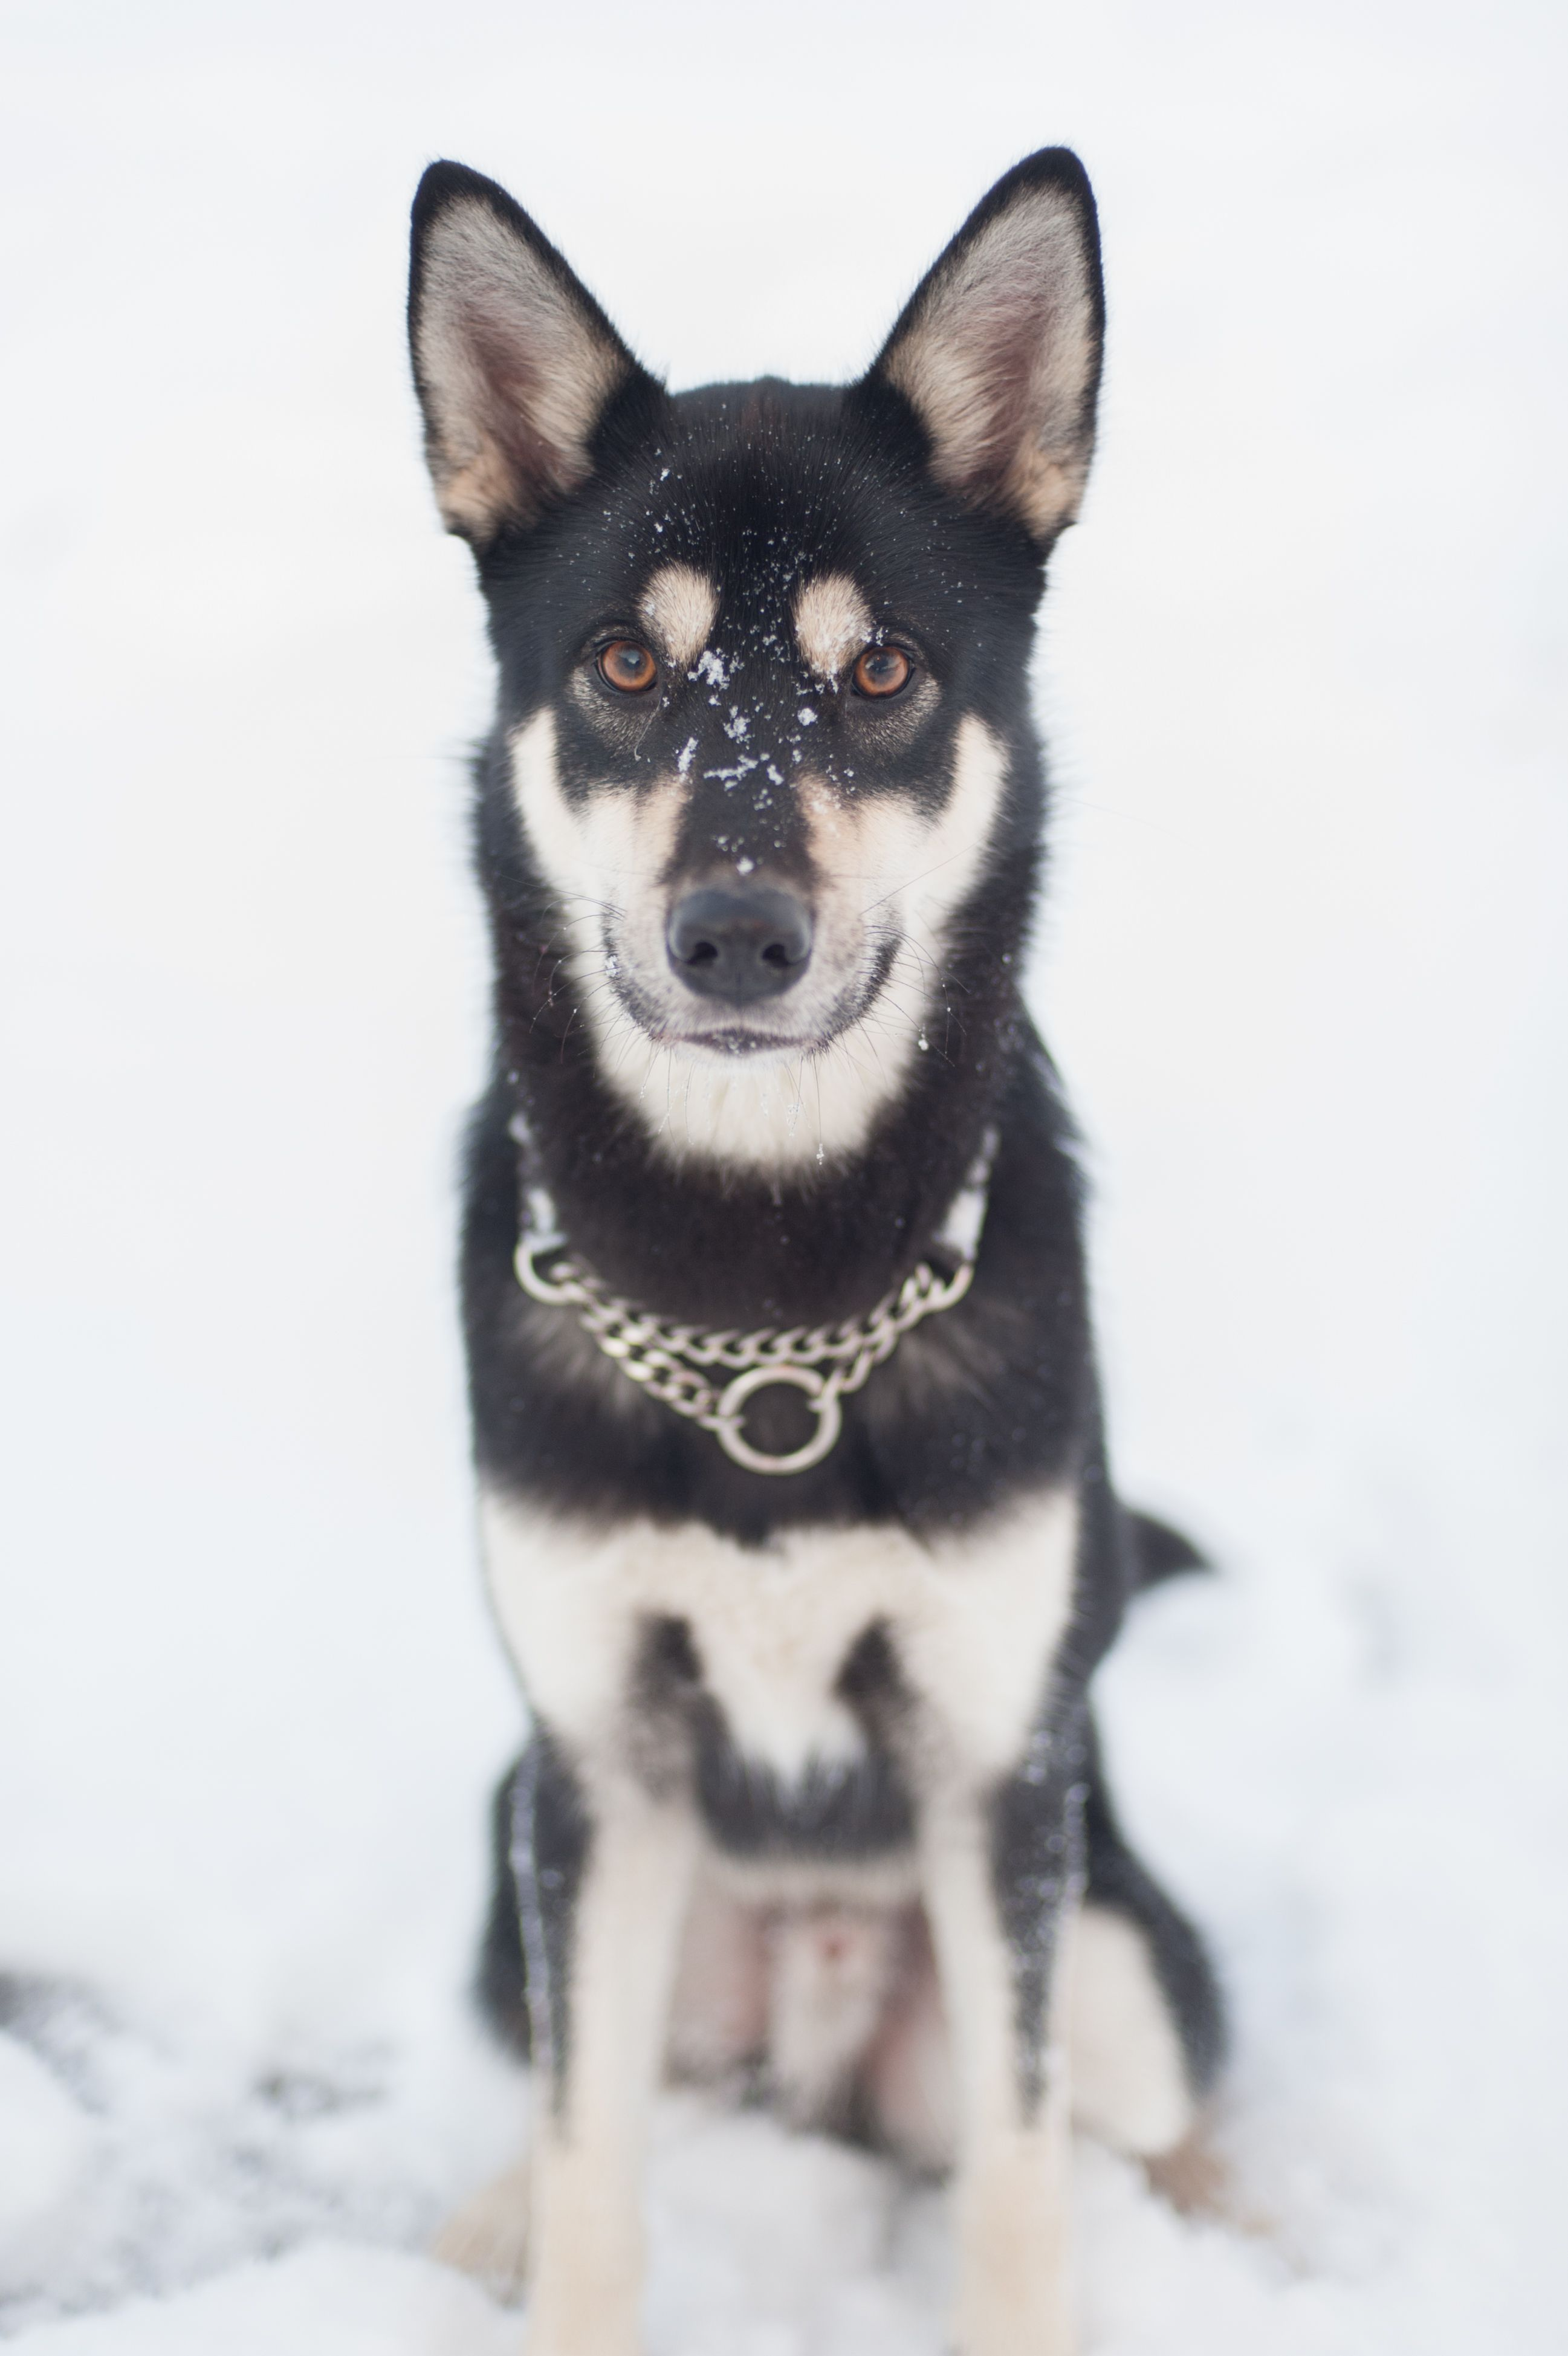 Shadow The Jindo My Black Tan Rescue Puppy From South Korea